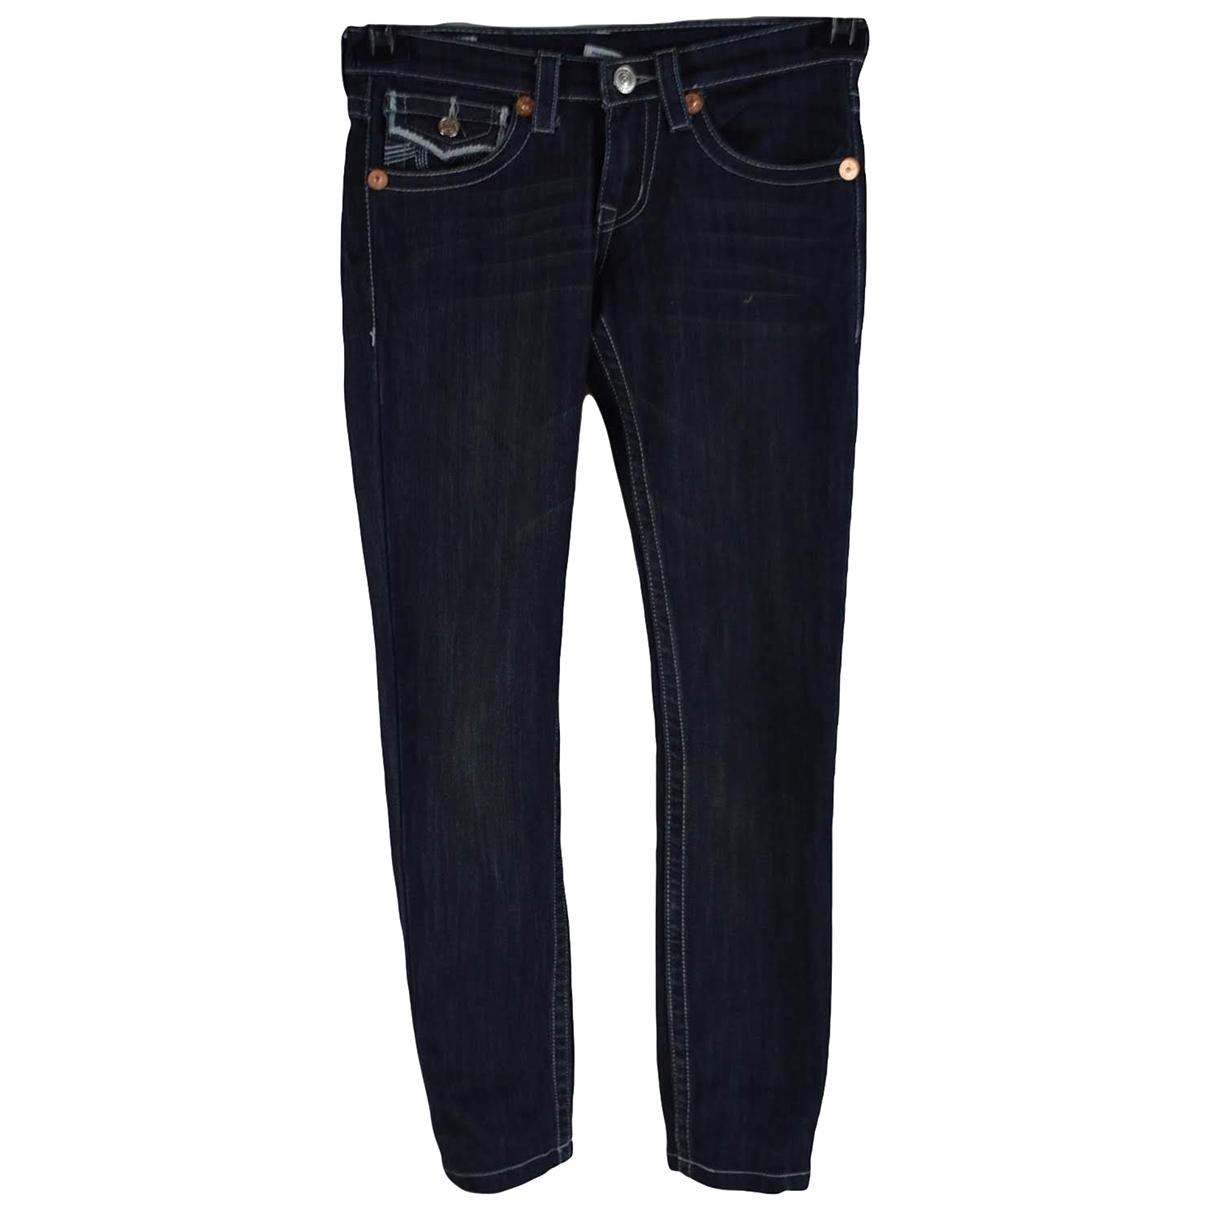 True Religion \N Blue Cotton - elasthane Jeans for Women 26 US